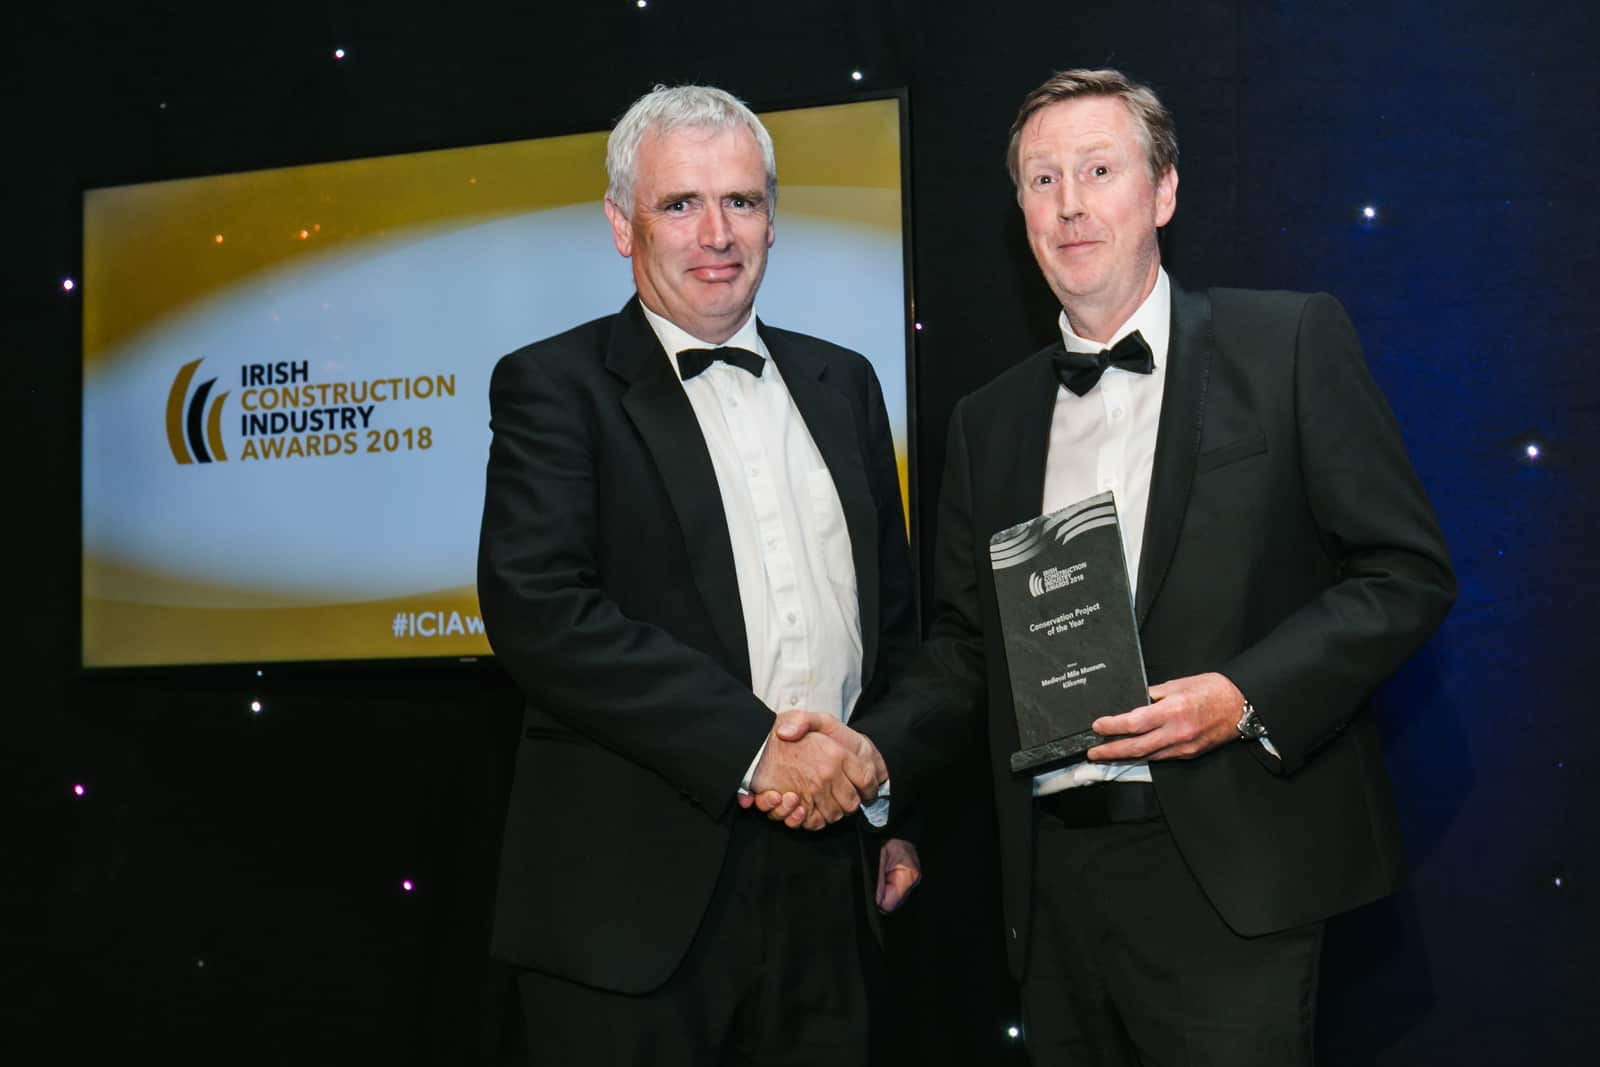 Irish Construction Industry Awards